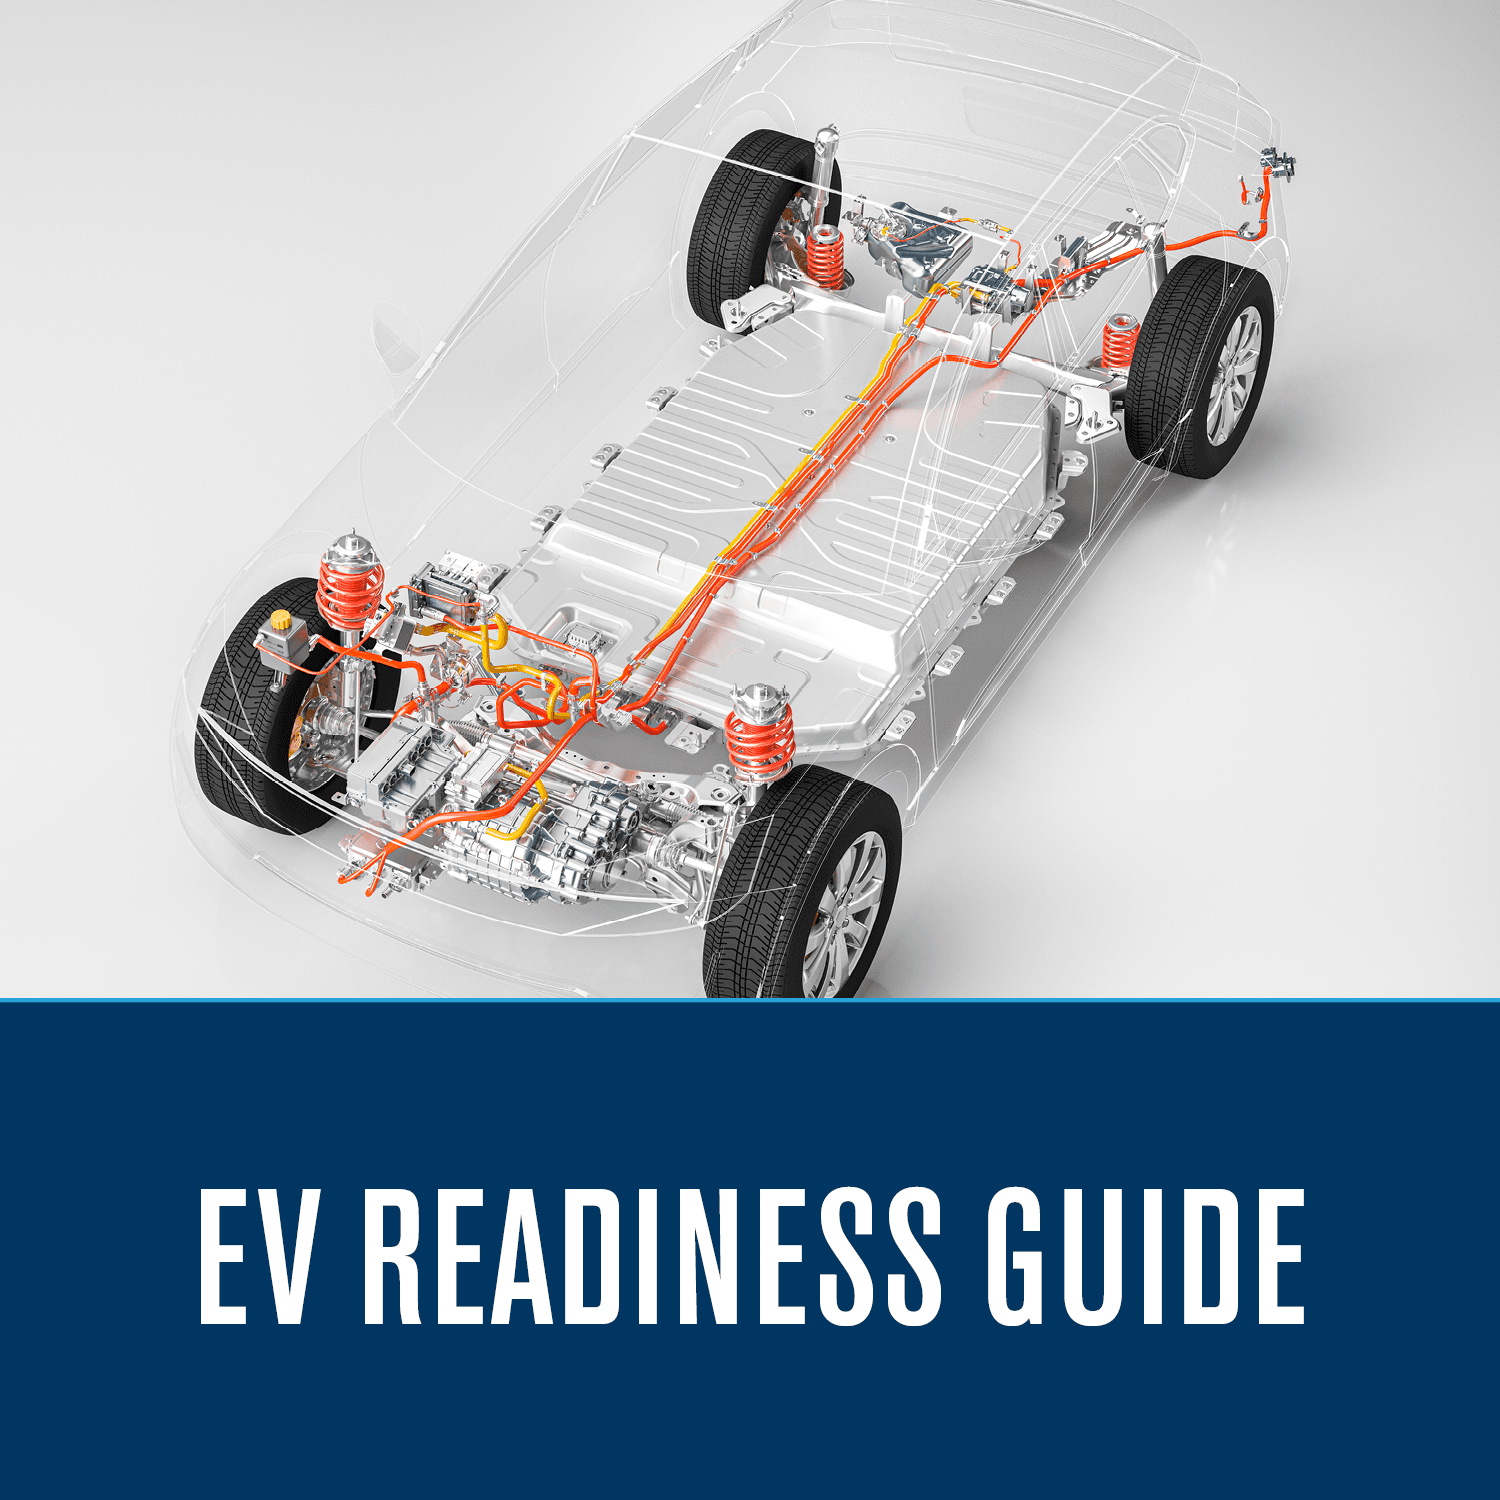 EV Readiness Guide